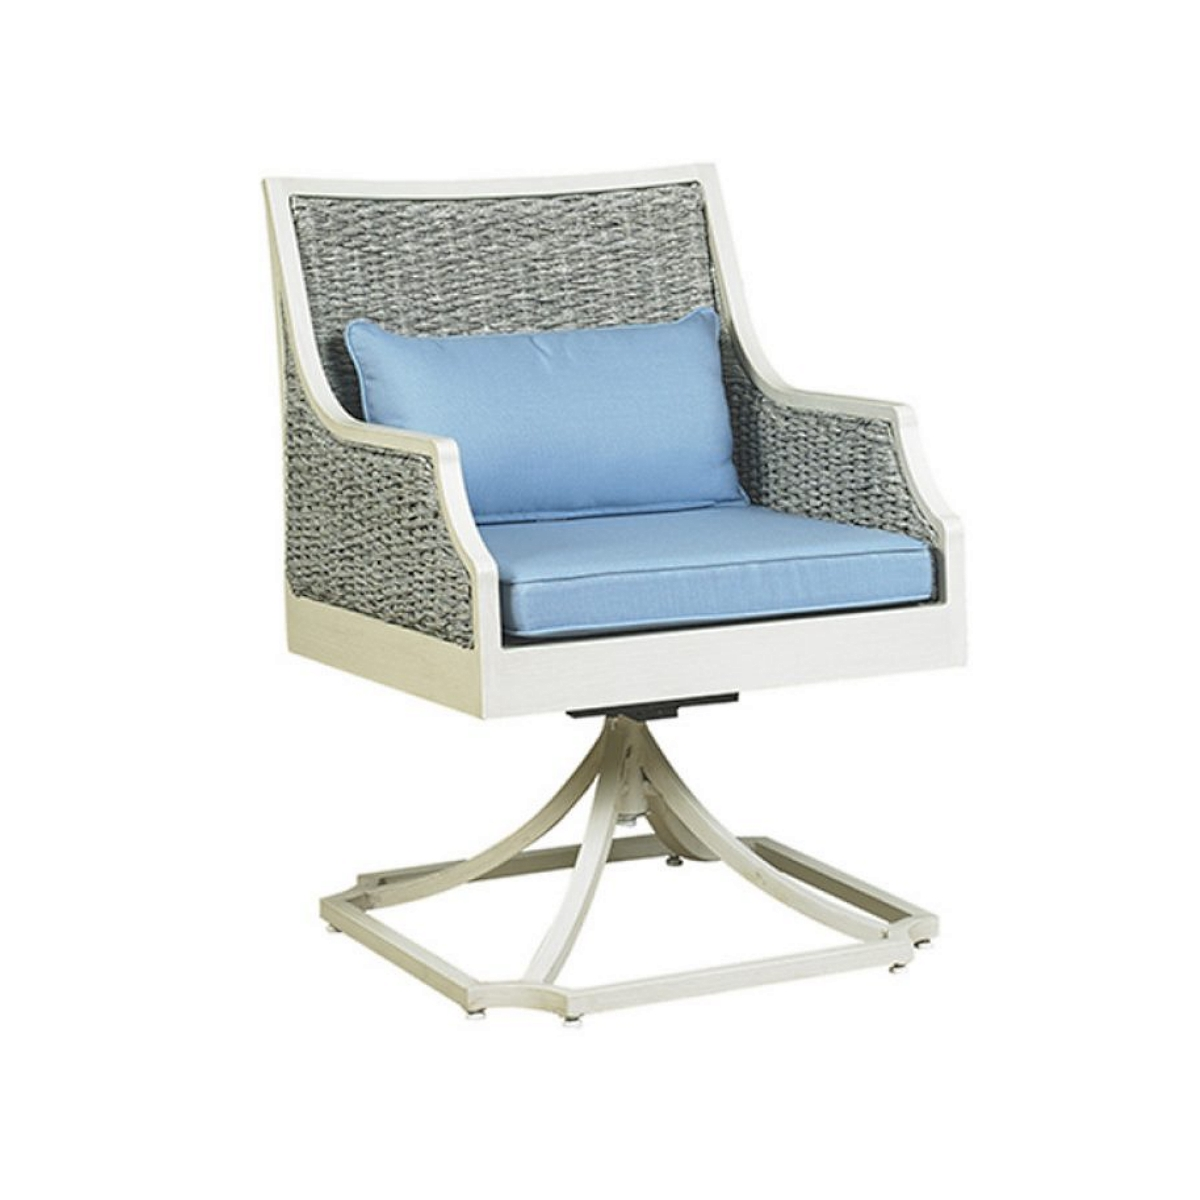 Swell Libby Mooring Outdoor Patio Swivel Dining Chair Ncnpc Chair Design For Home Ncnpcorg